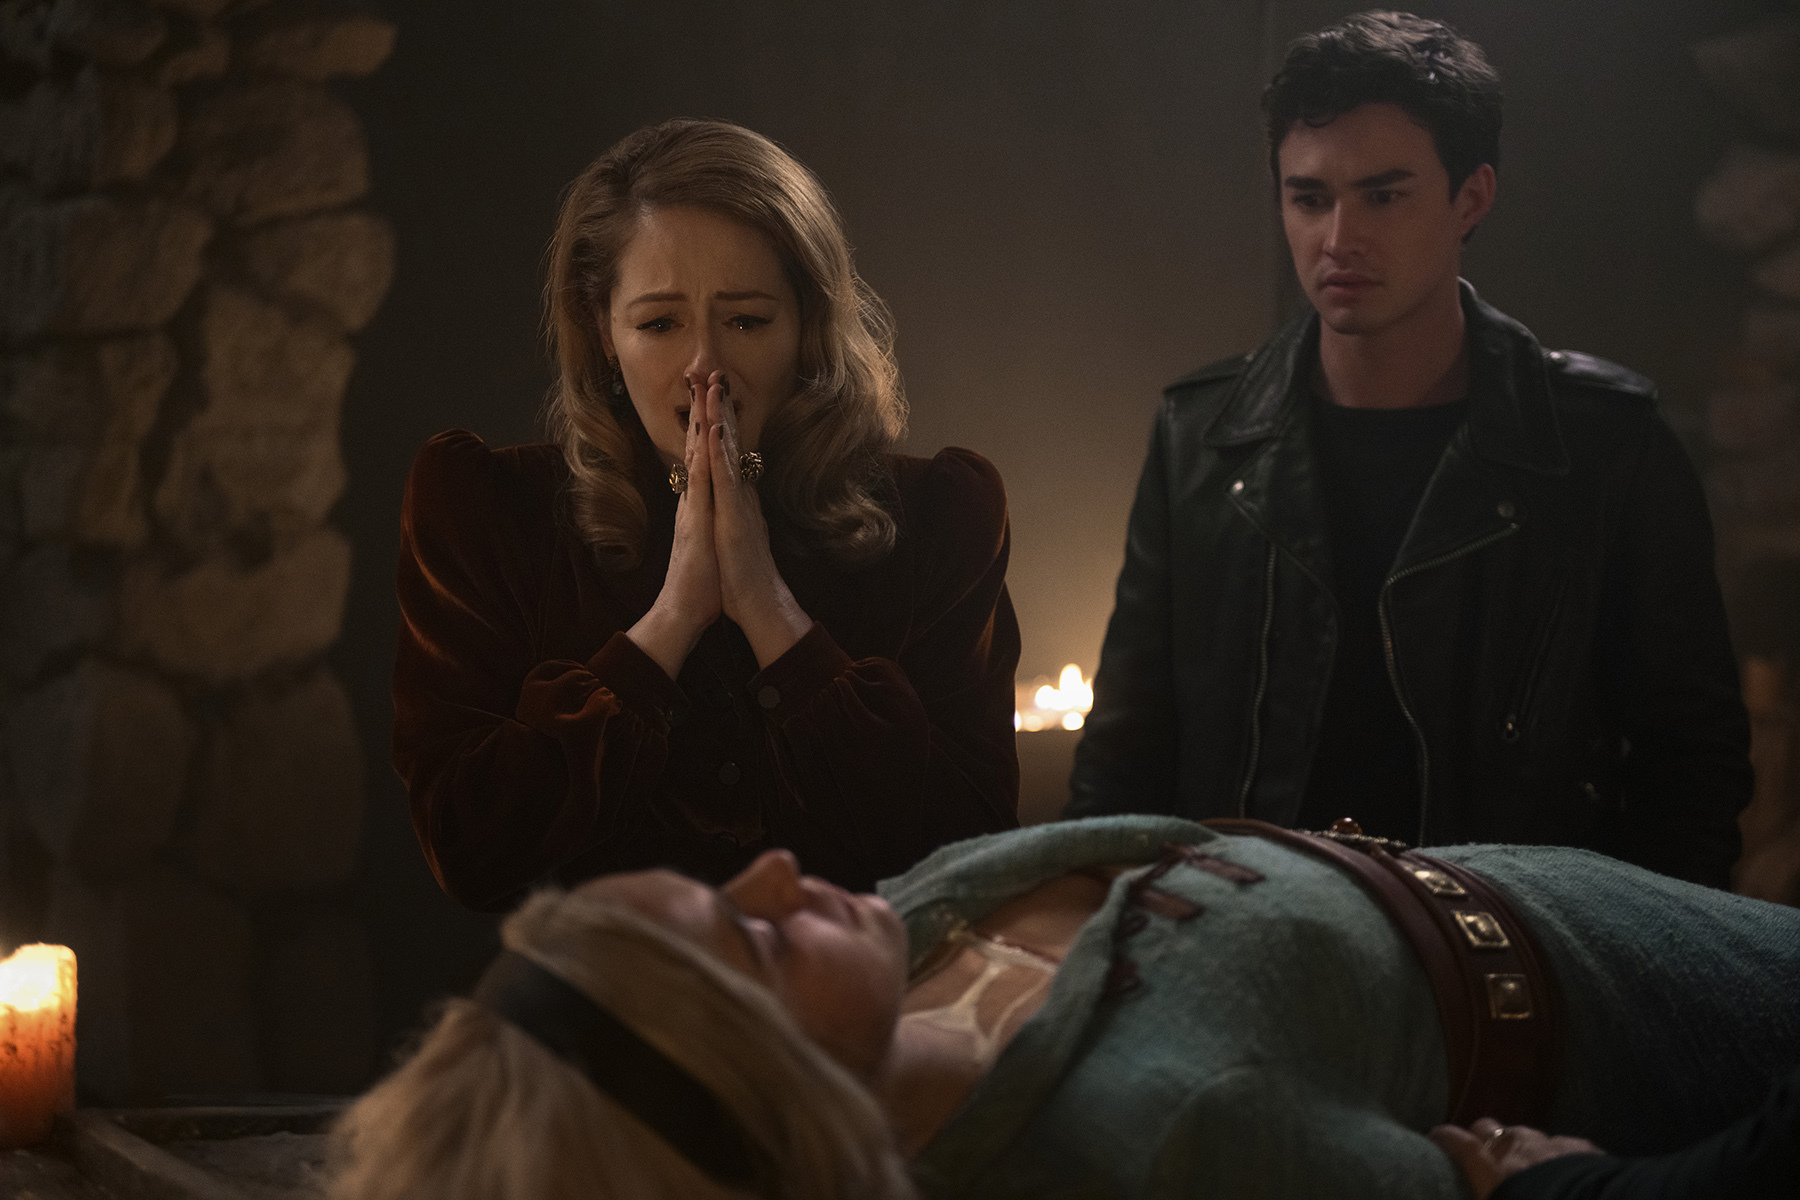 Sabrina (Kiernan Shipka, prone) is mourned by Aunt Zelda (Miranda Otto, left) and Nick Scratch (Gavin Leatherwood). Not the ending the first three seasons would lead you to expect for 'The Chilling Adventures of Sabrina.'